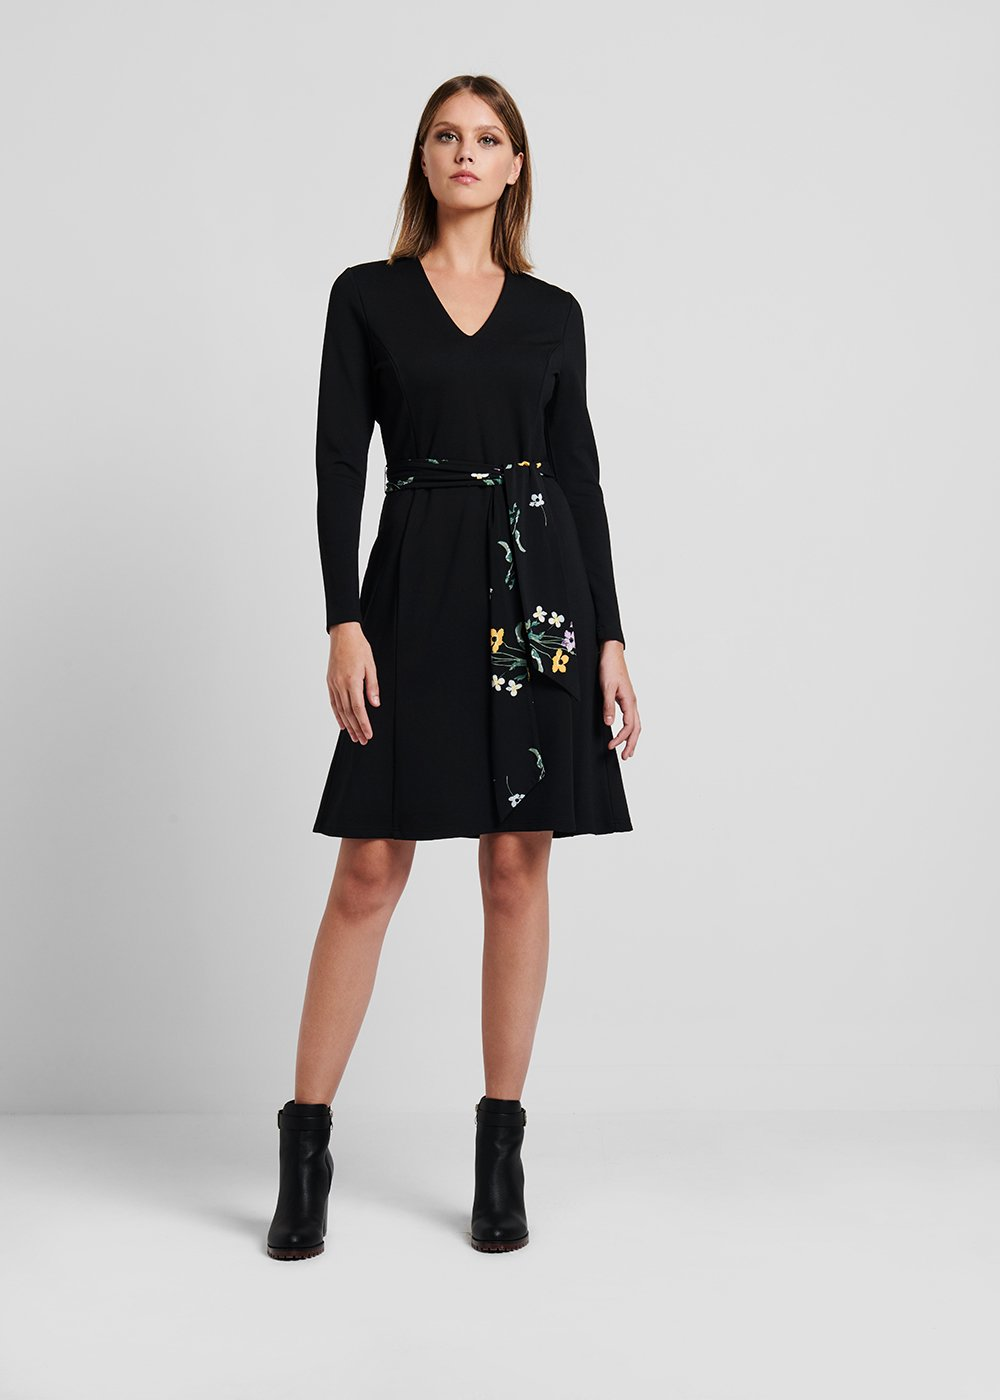 Jersey dress with floral printed belt - Black - Woman